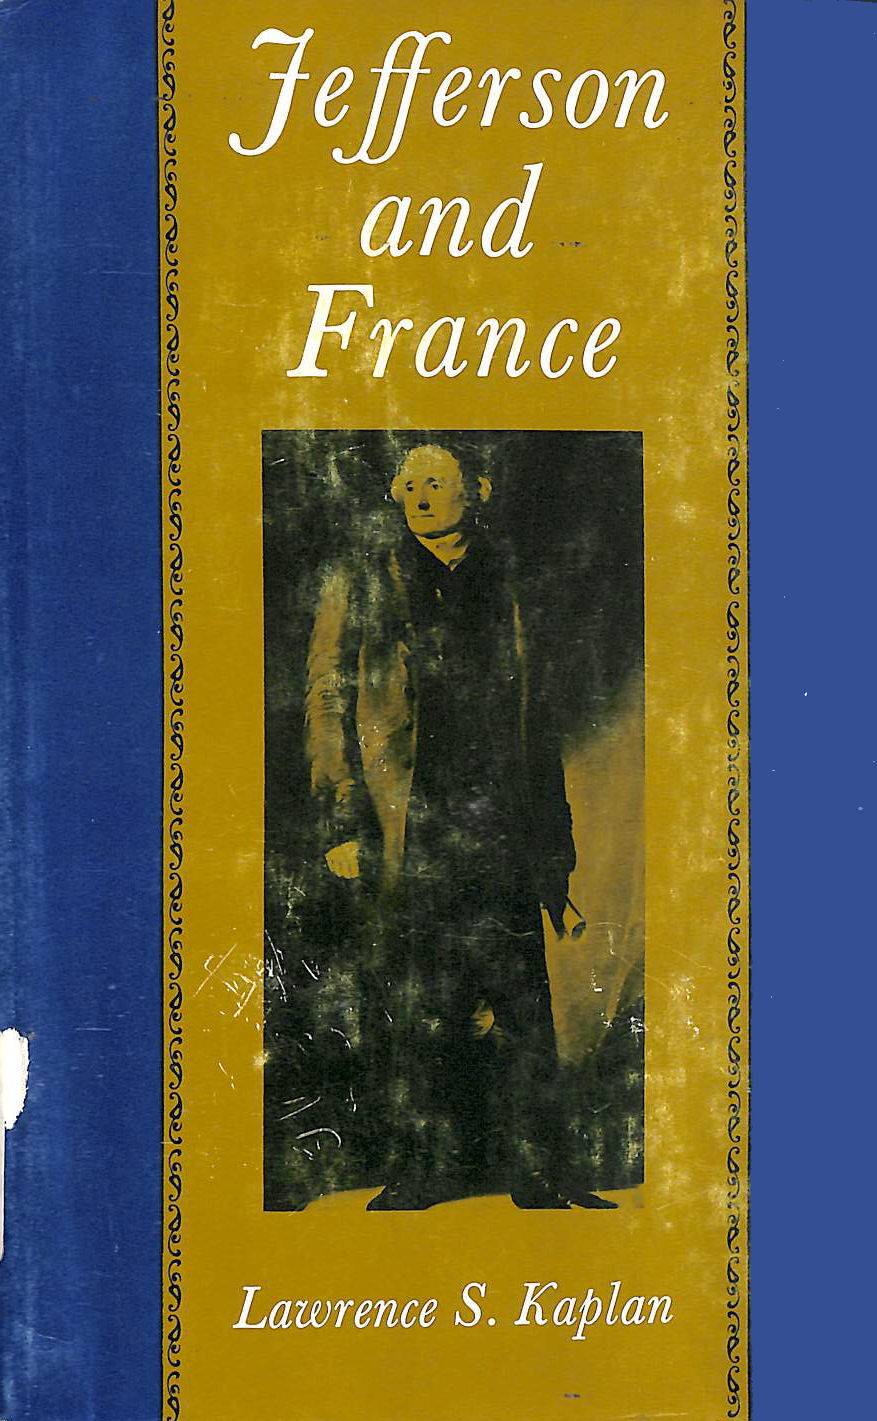 Image for Jefferson and France: An Essay on Politics and Political Ideas